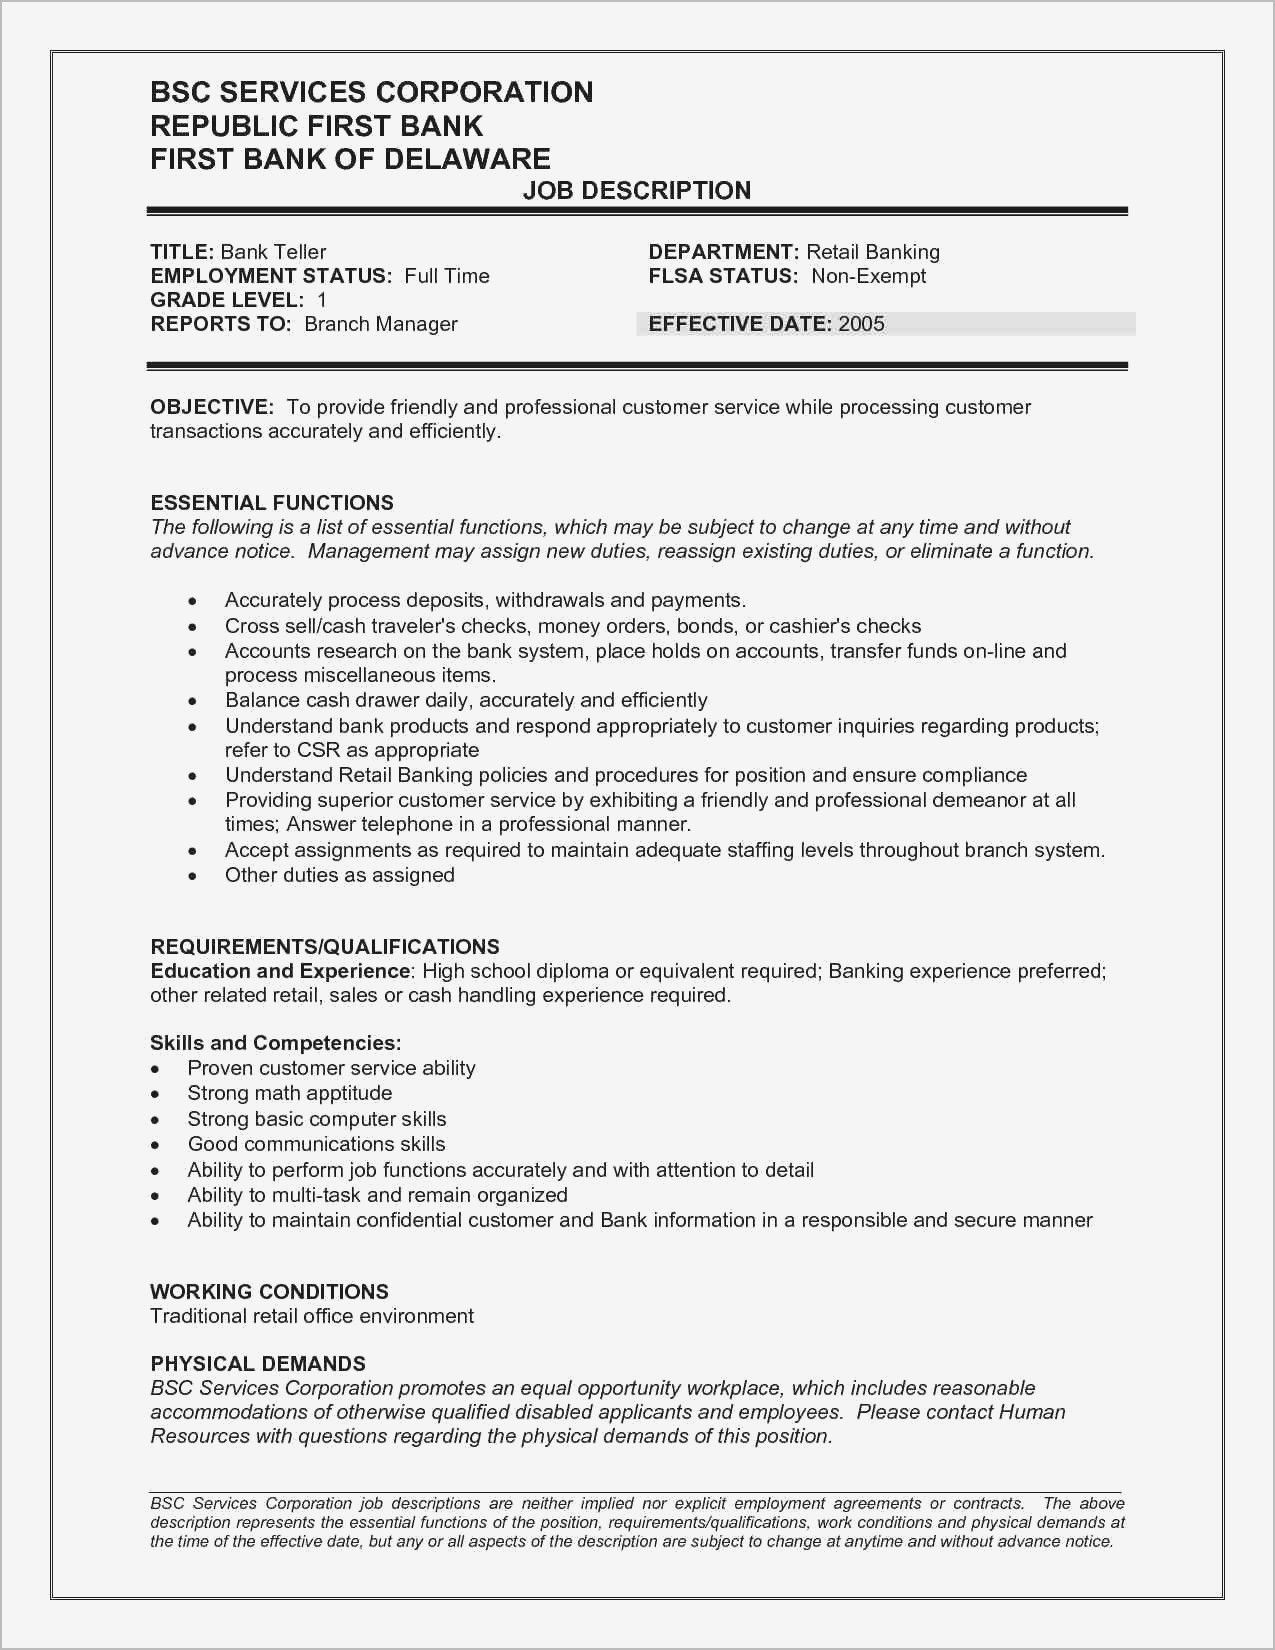 73 Unique Stock Of Resume Examples For Personal Bankers